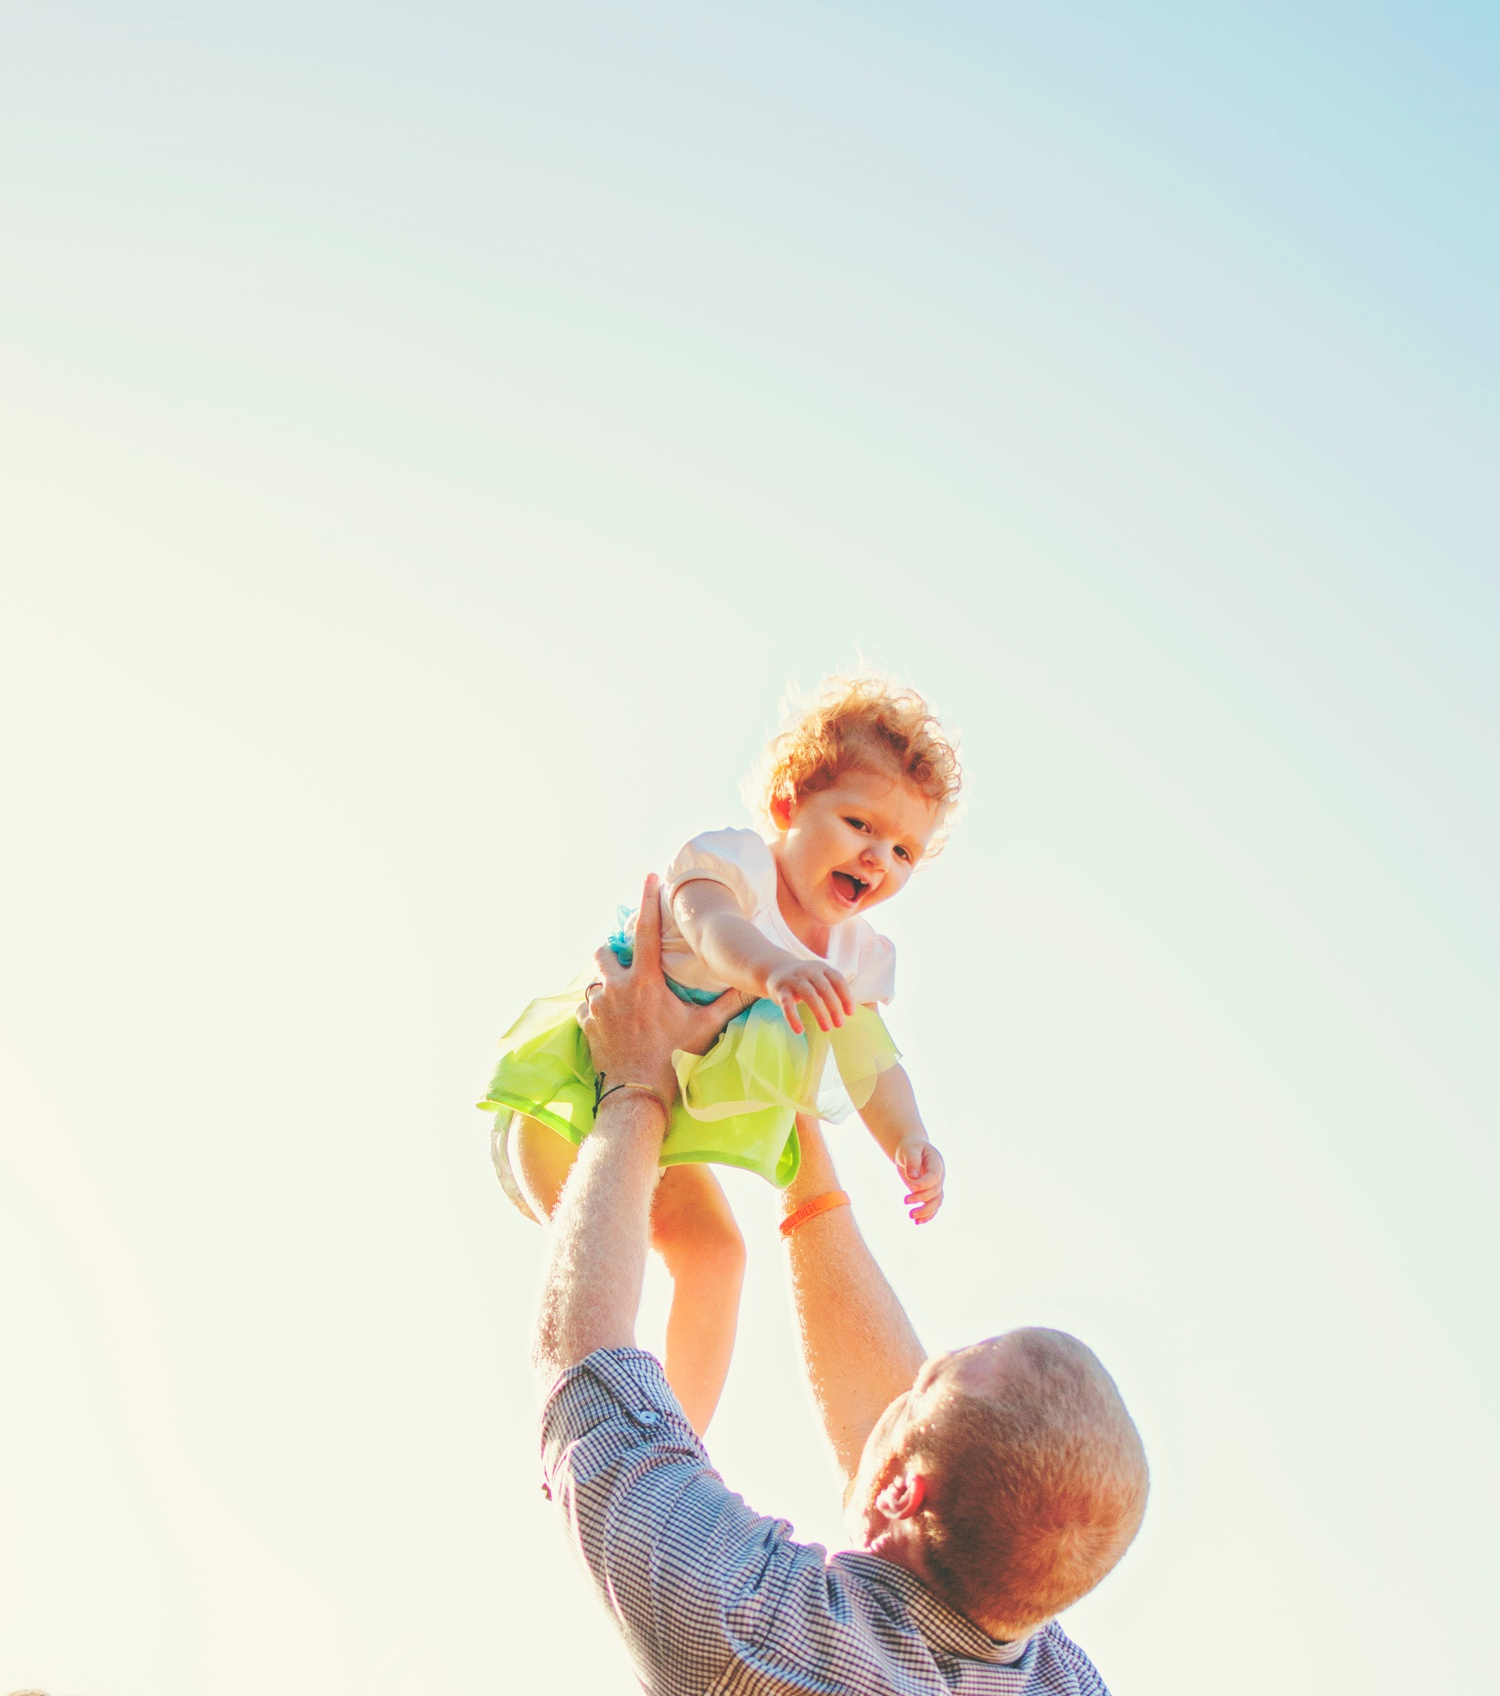 child photography amsw photography dad lifting girl in air